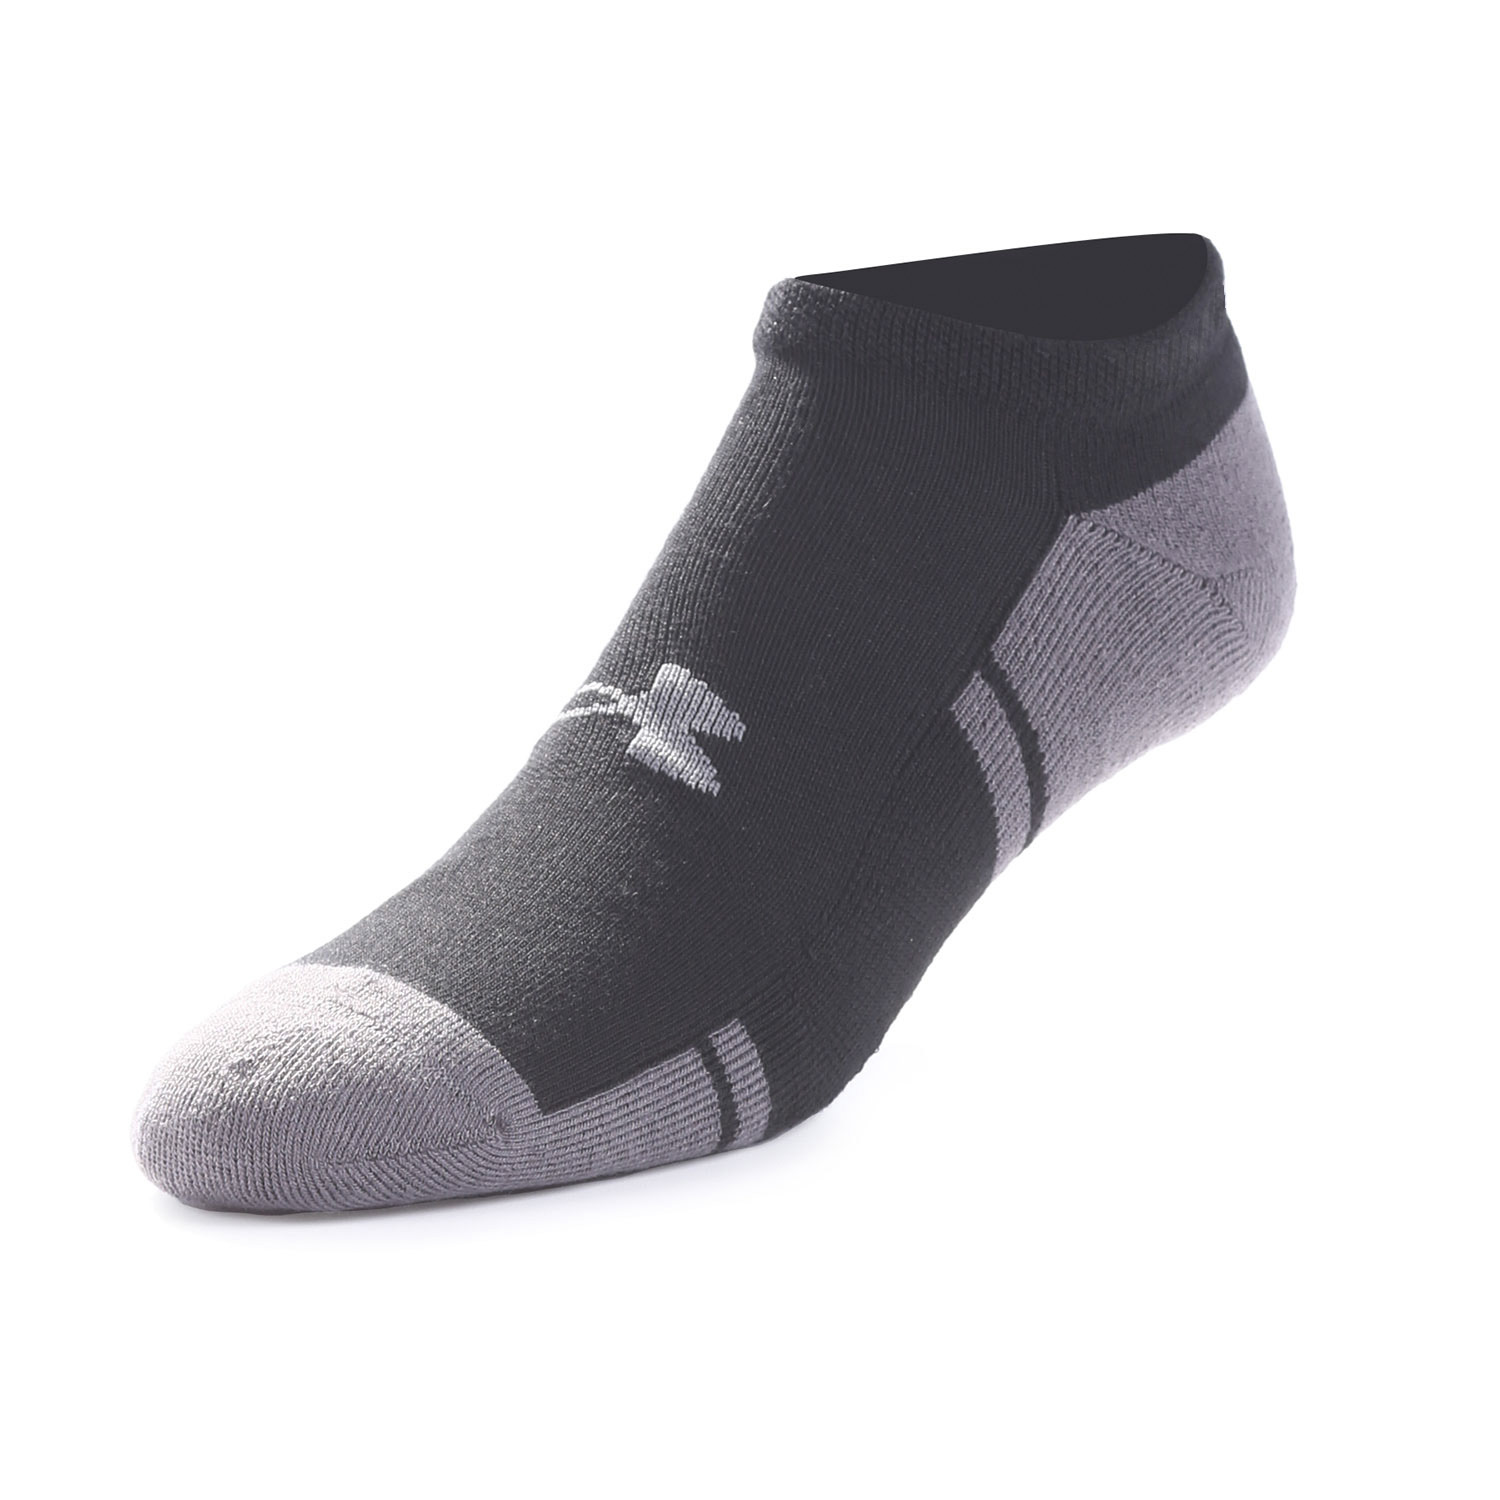 Under Armour Resistor 3.0 No Show Sock 6 Pack